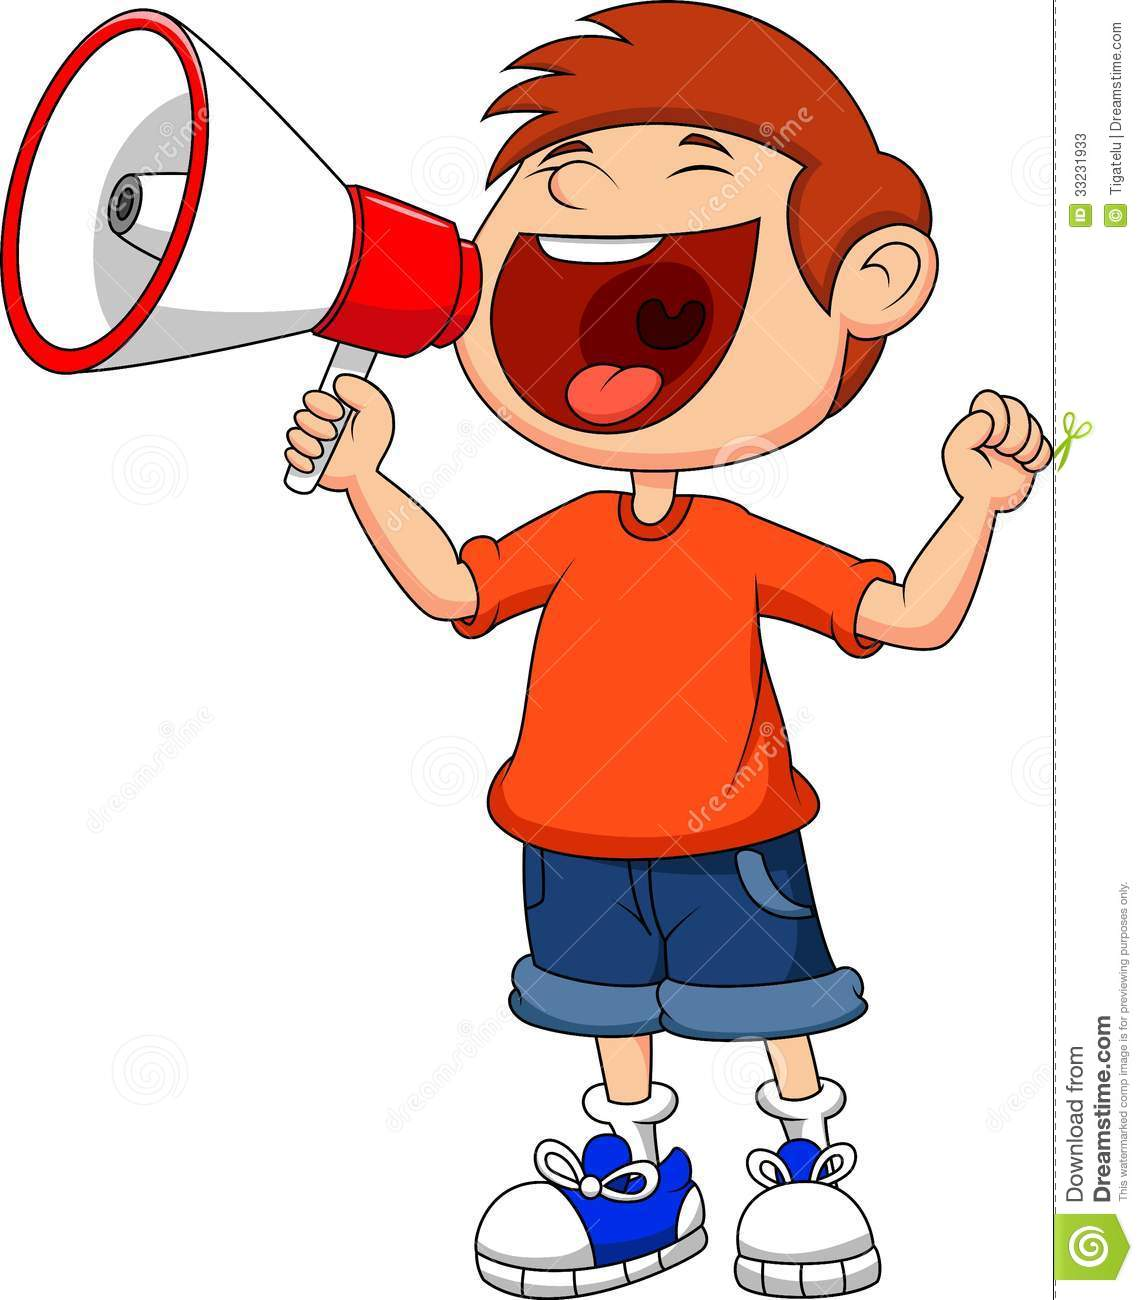 Cartoon Boy Yelling And Shouting Into A Megaphone Stock Photos   Image